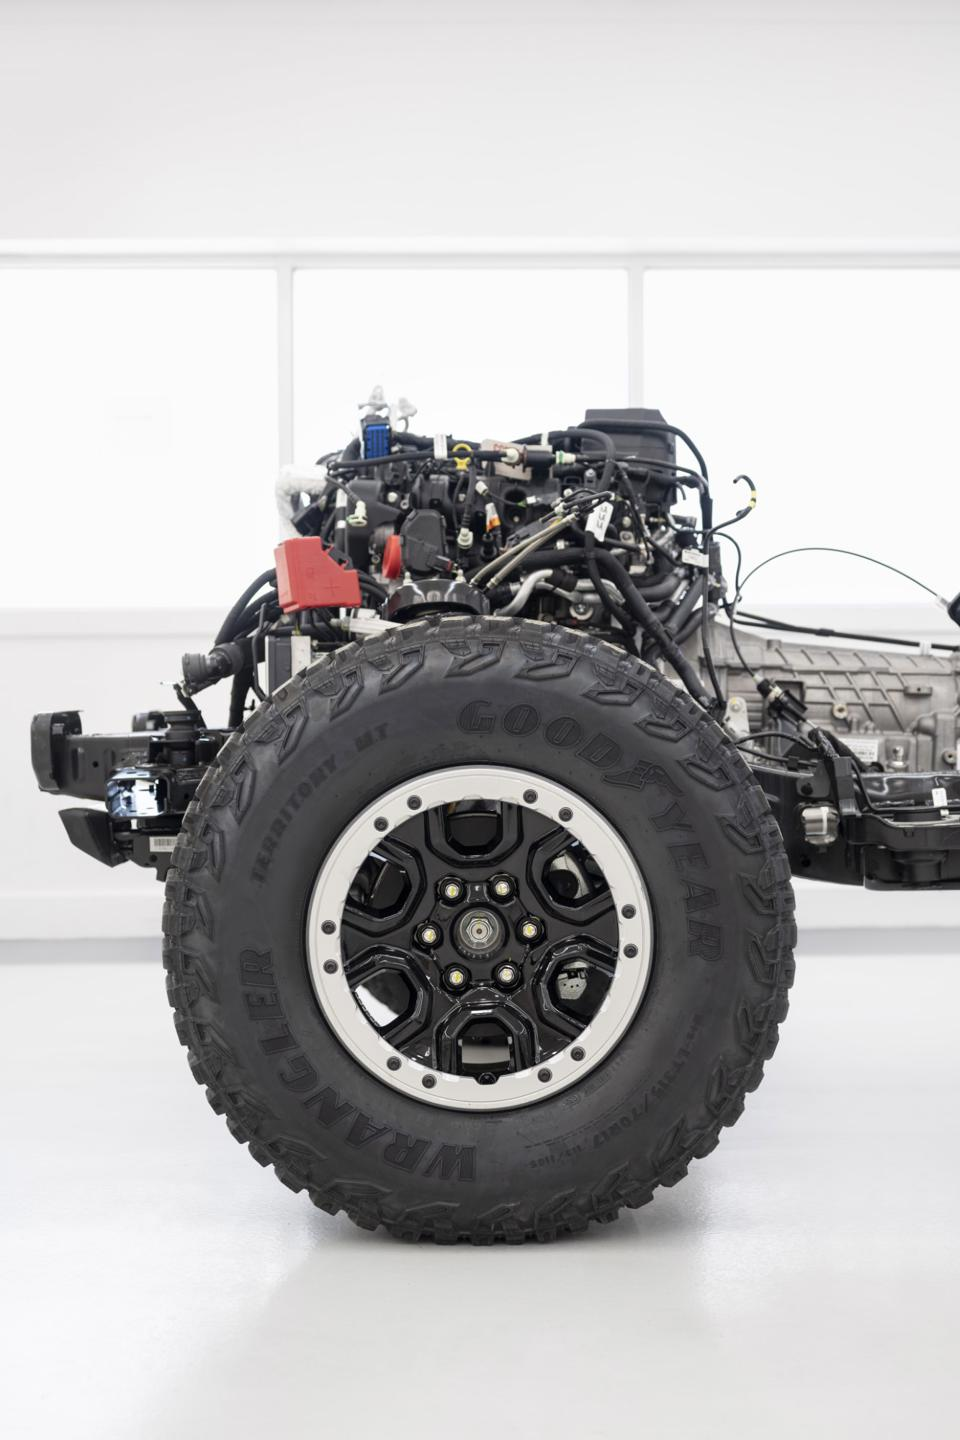 2021 Bronco chassis and powertrain with Sasquatch Package featuring 17-inch high-gloss black aluminum alloy wheels, warm alloy beauty ring and beadlock-capable 35-inch LT315/70R17 mud-terrain tires.